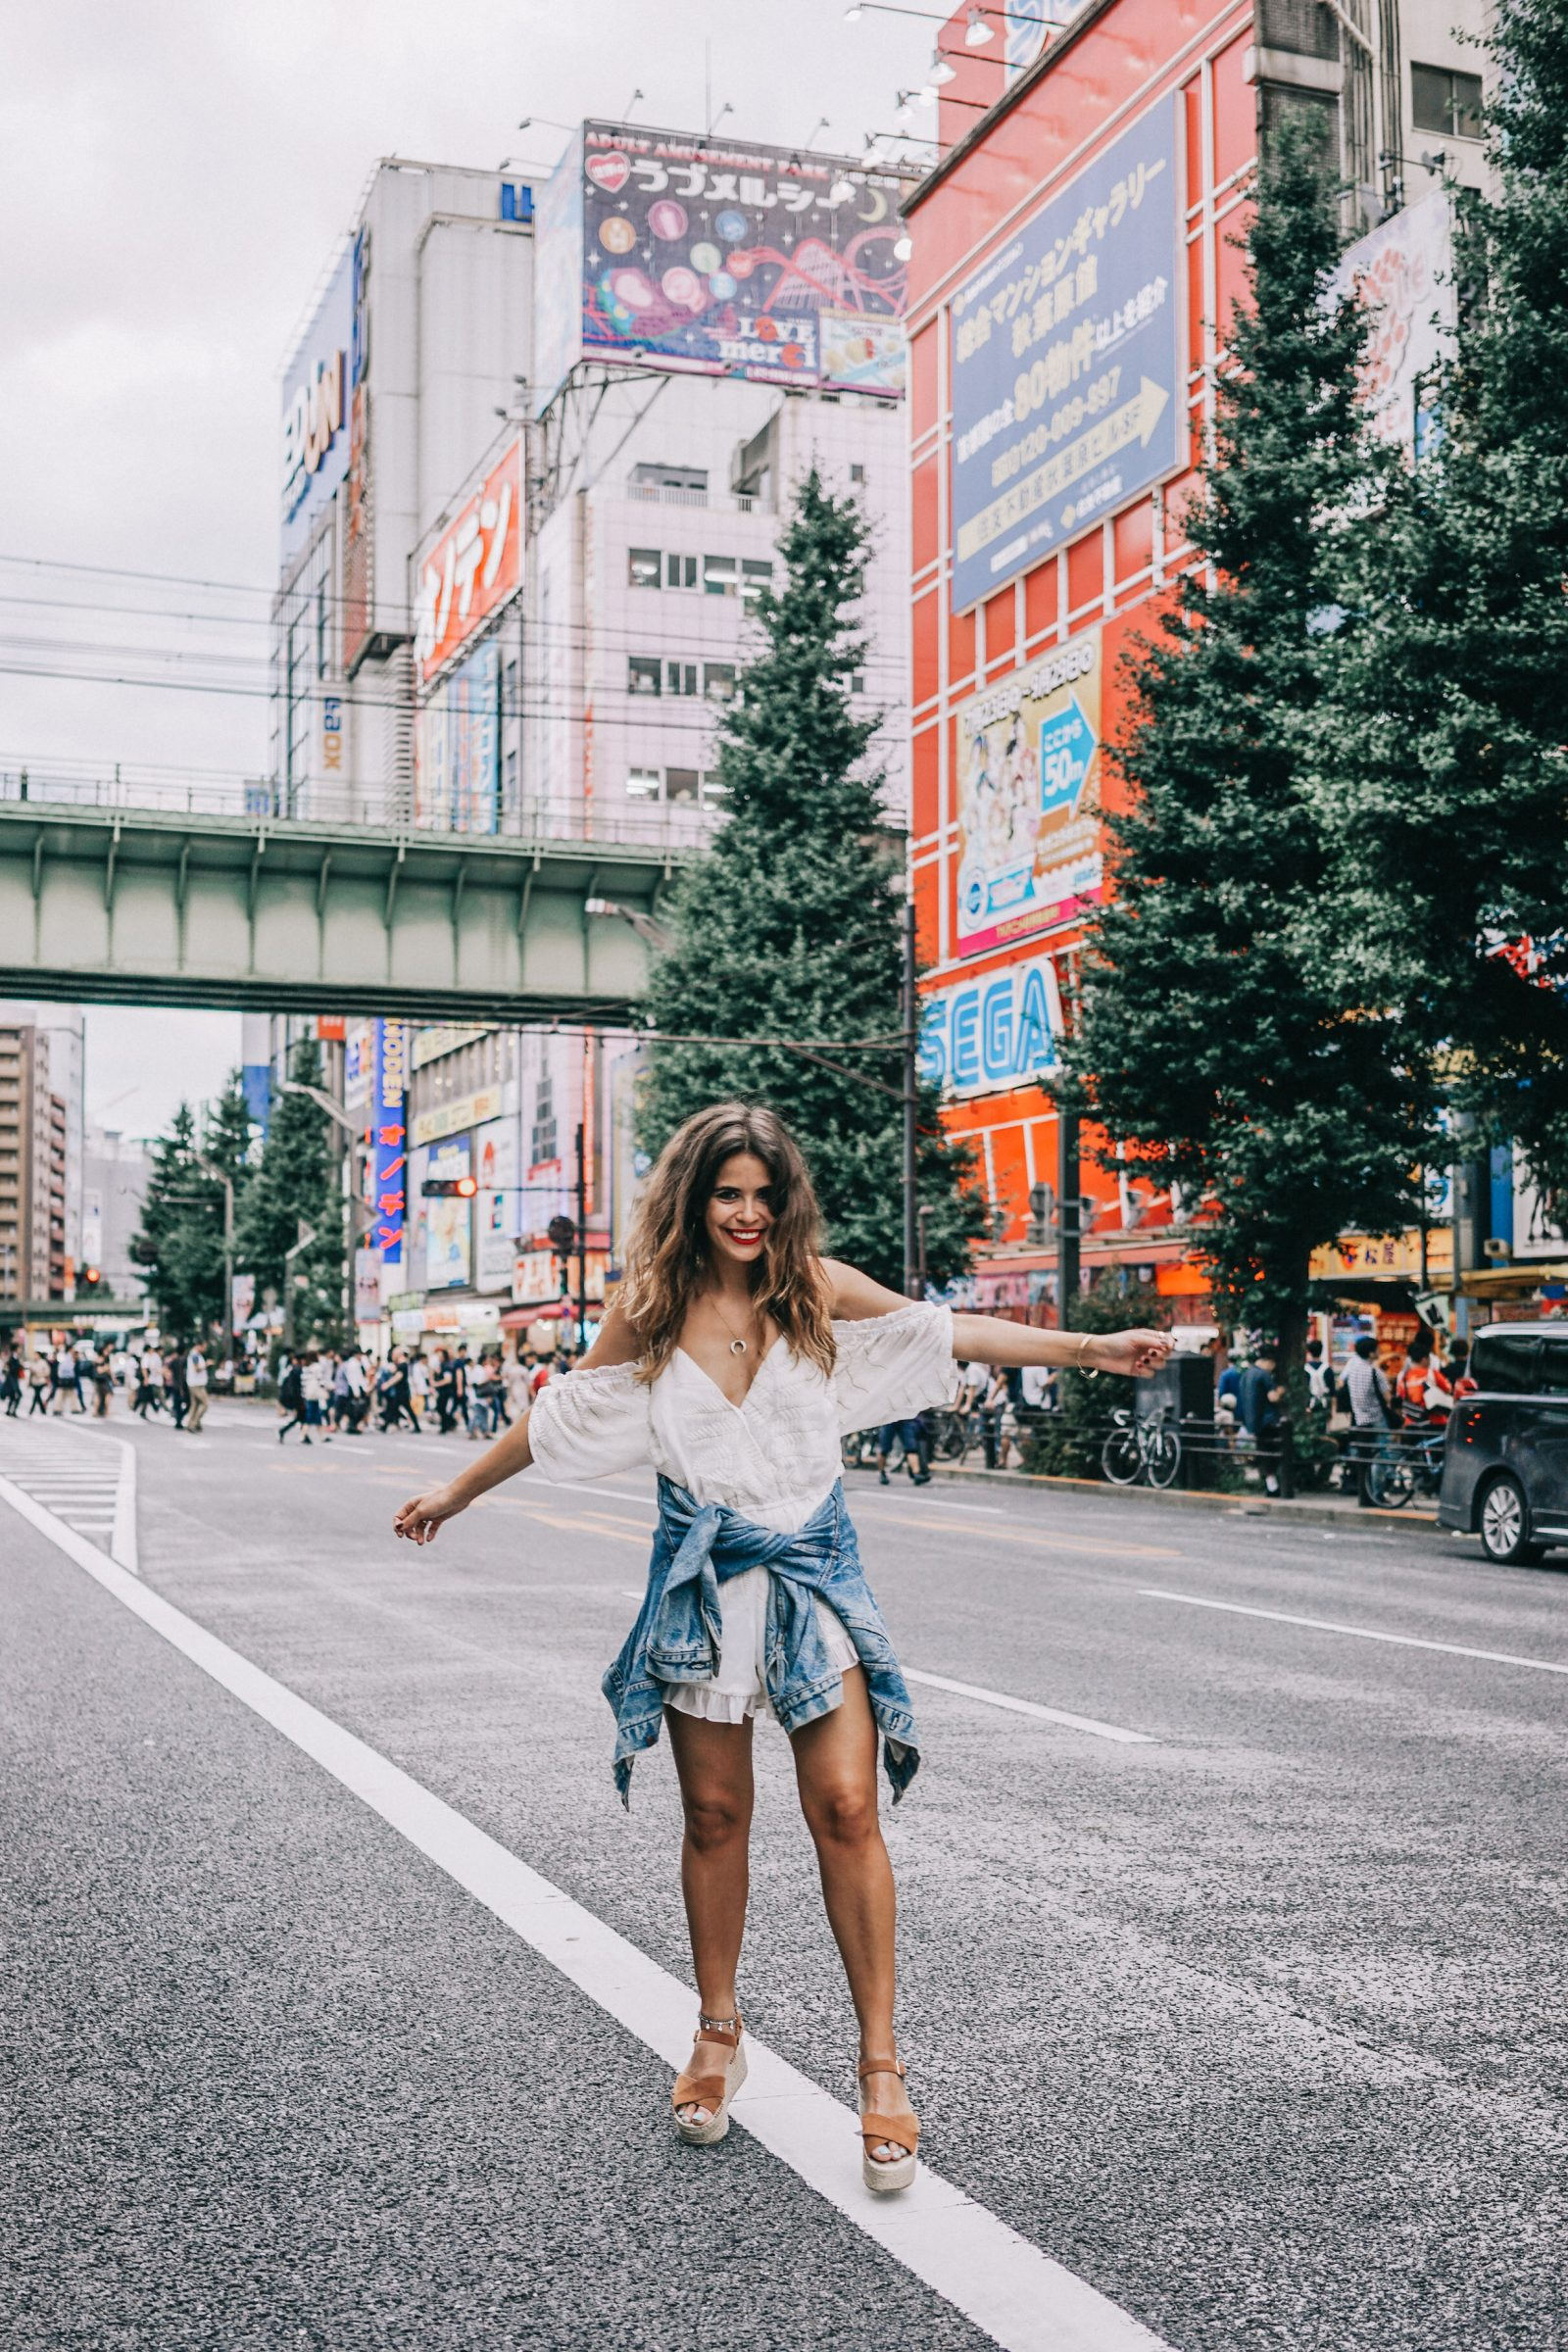 tokyo_travel_guide-outfit-collage_vintage-street_style-lovers_and_friends_jumpsuit-white_outfit-espadrilles-backpack-levis_denim_jacket-akihabara-127